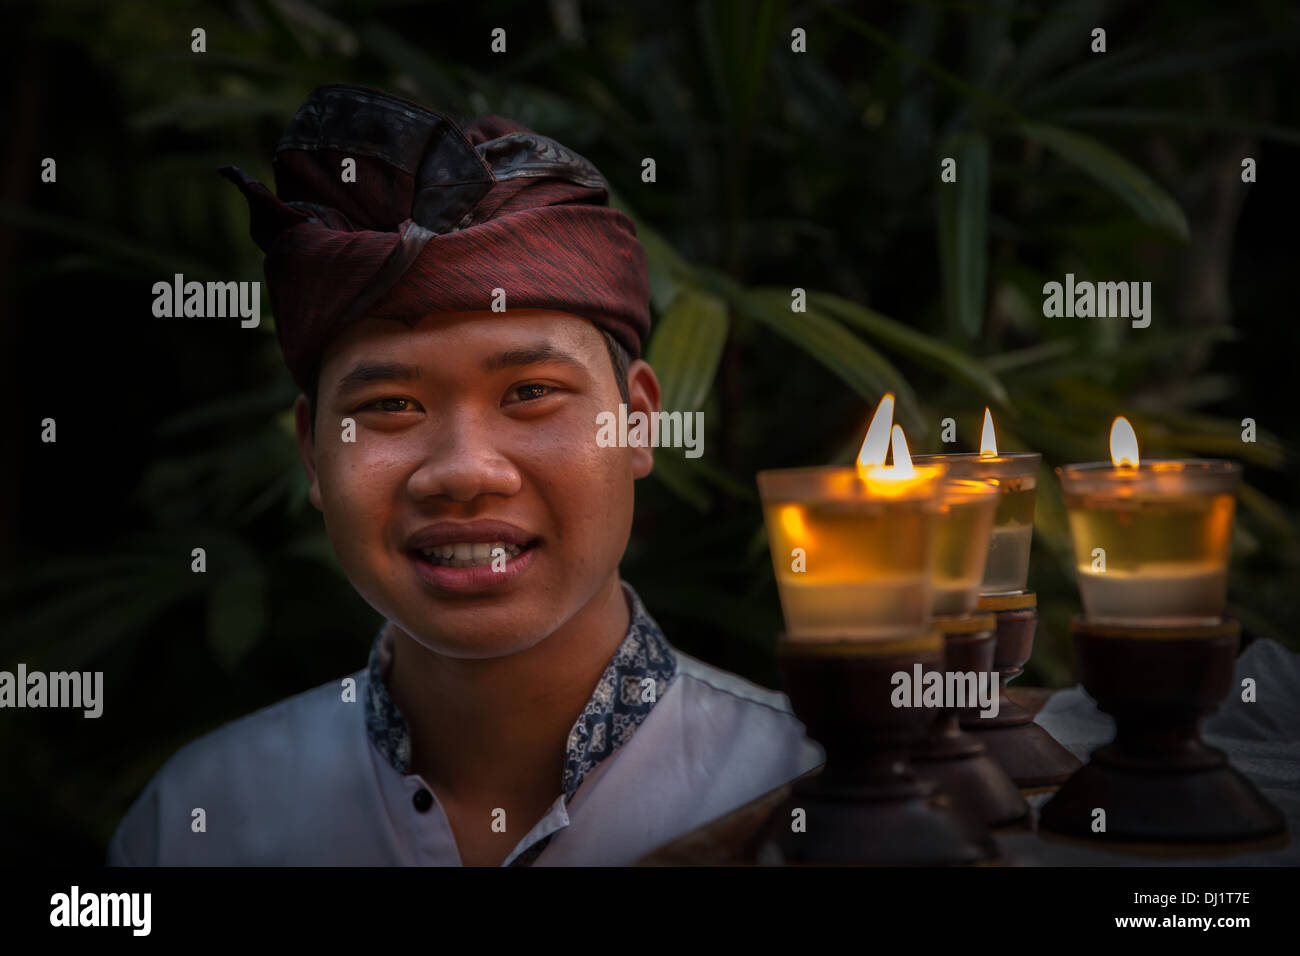 A Balinese man in traditional clothing carrying candles, Ubud, Bali, Indonesia, Asia - Stock Image